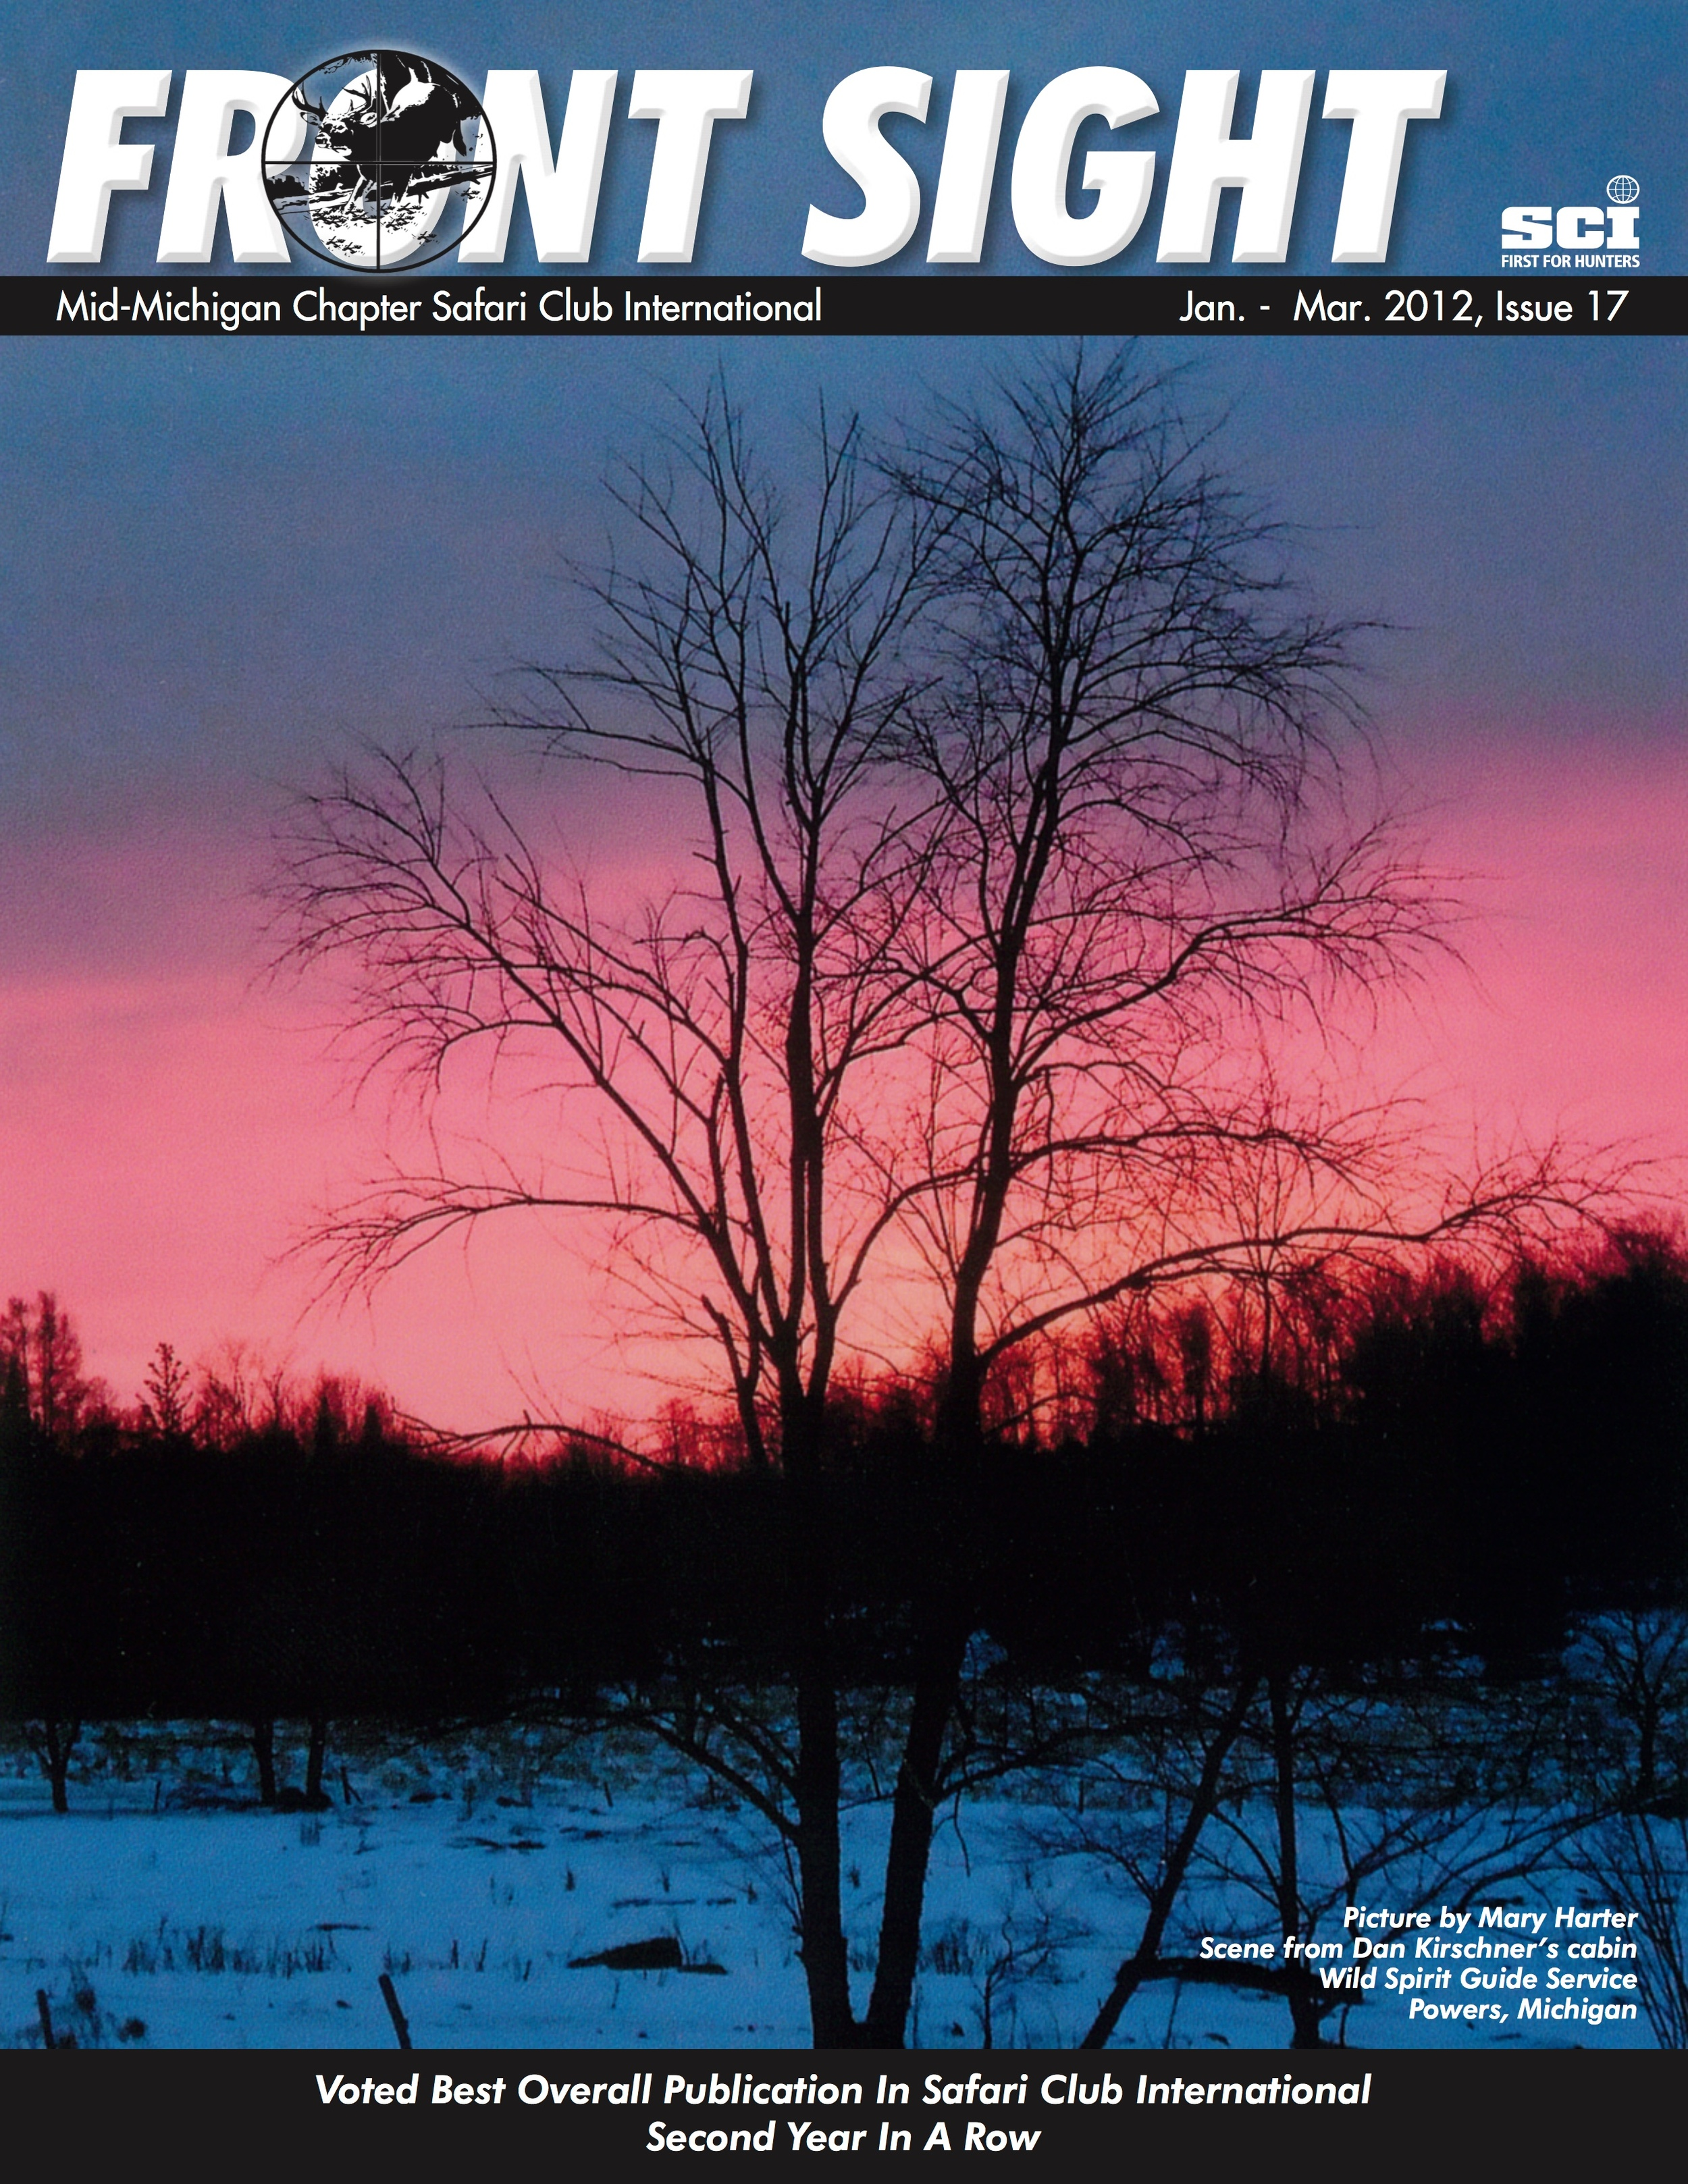 Issue 17, January 2012